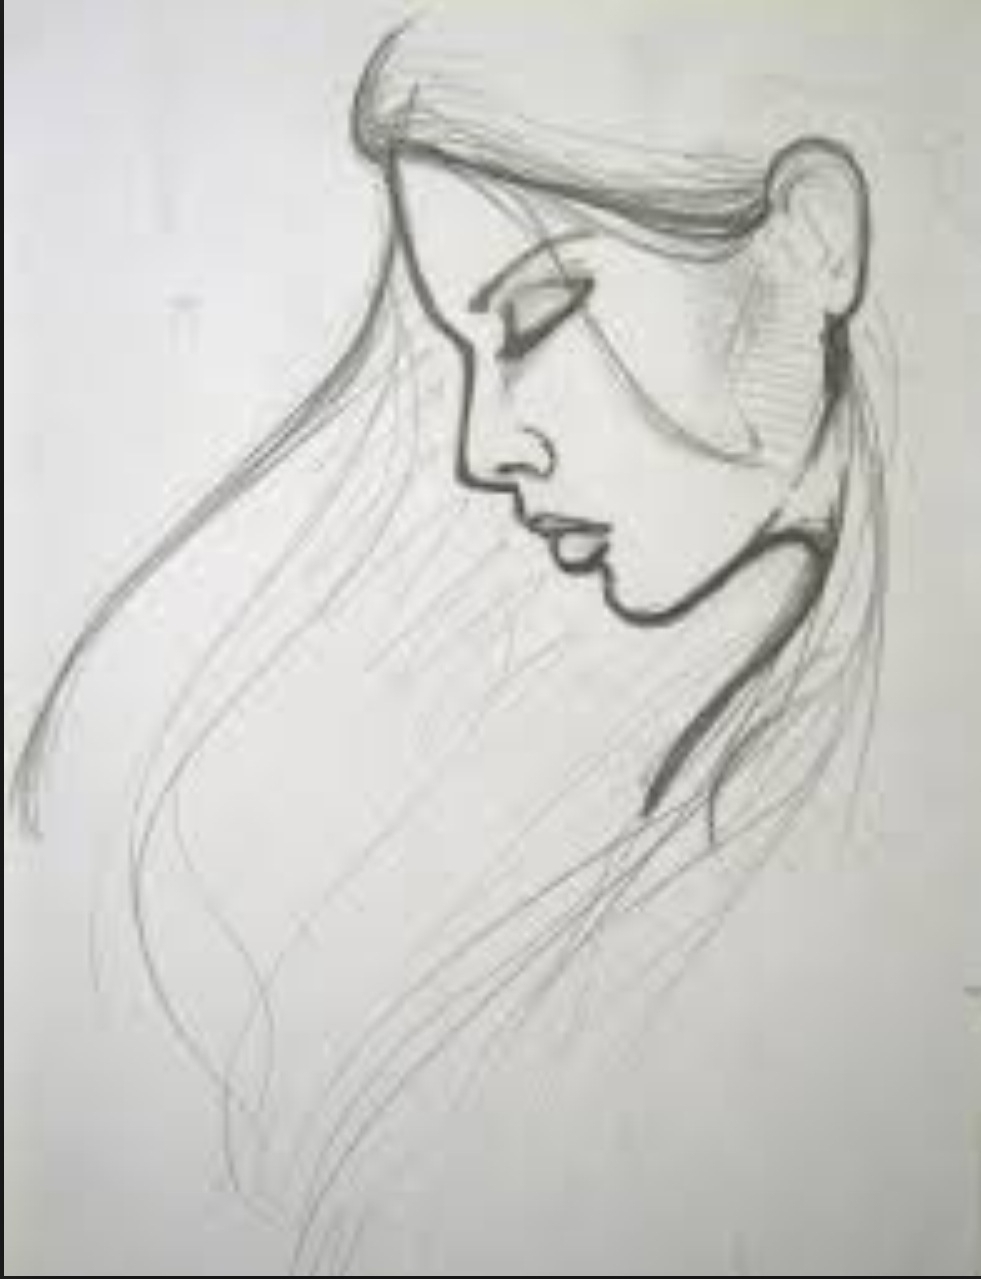 Easy Sketching Ideas For Beginners at PaintingValley.com ...